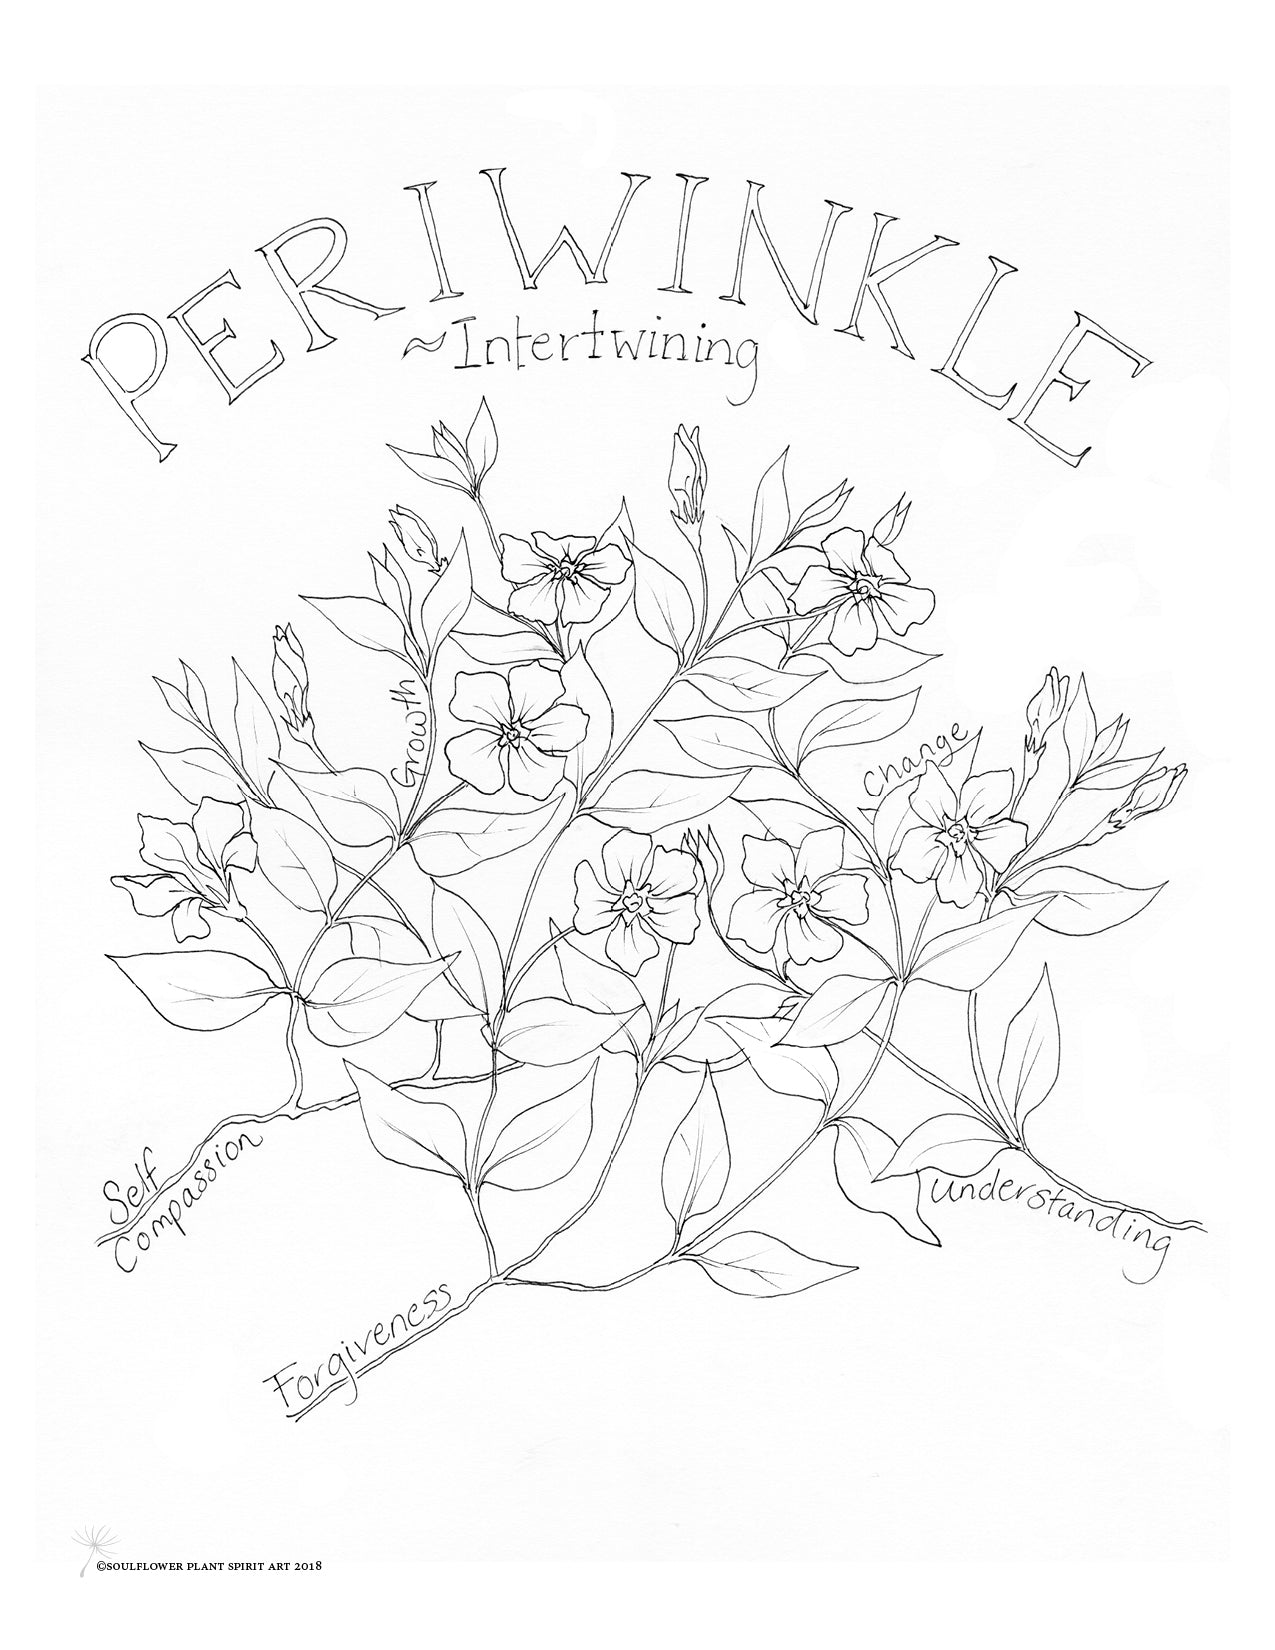 Periwinkle (Intertwining) Coloring Page - My Soulflower